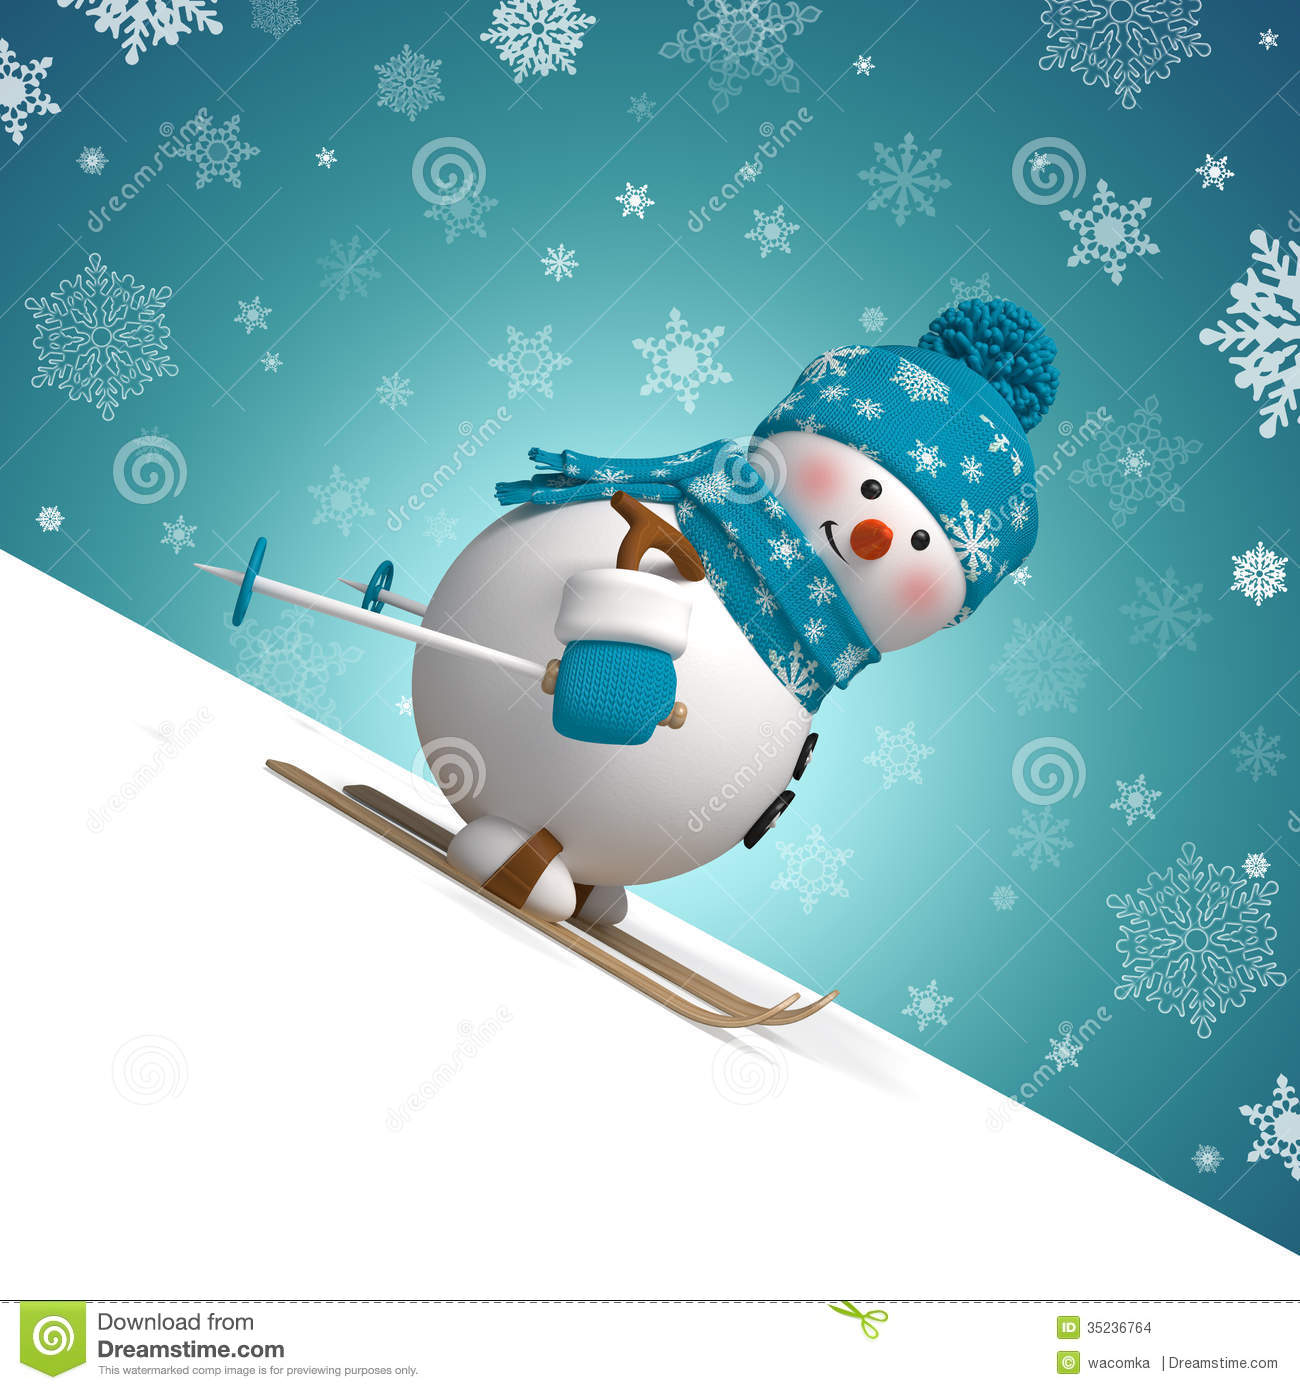 3d skiing snowman Christmas greeting card